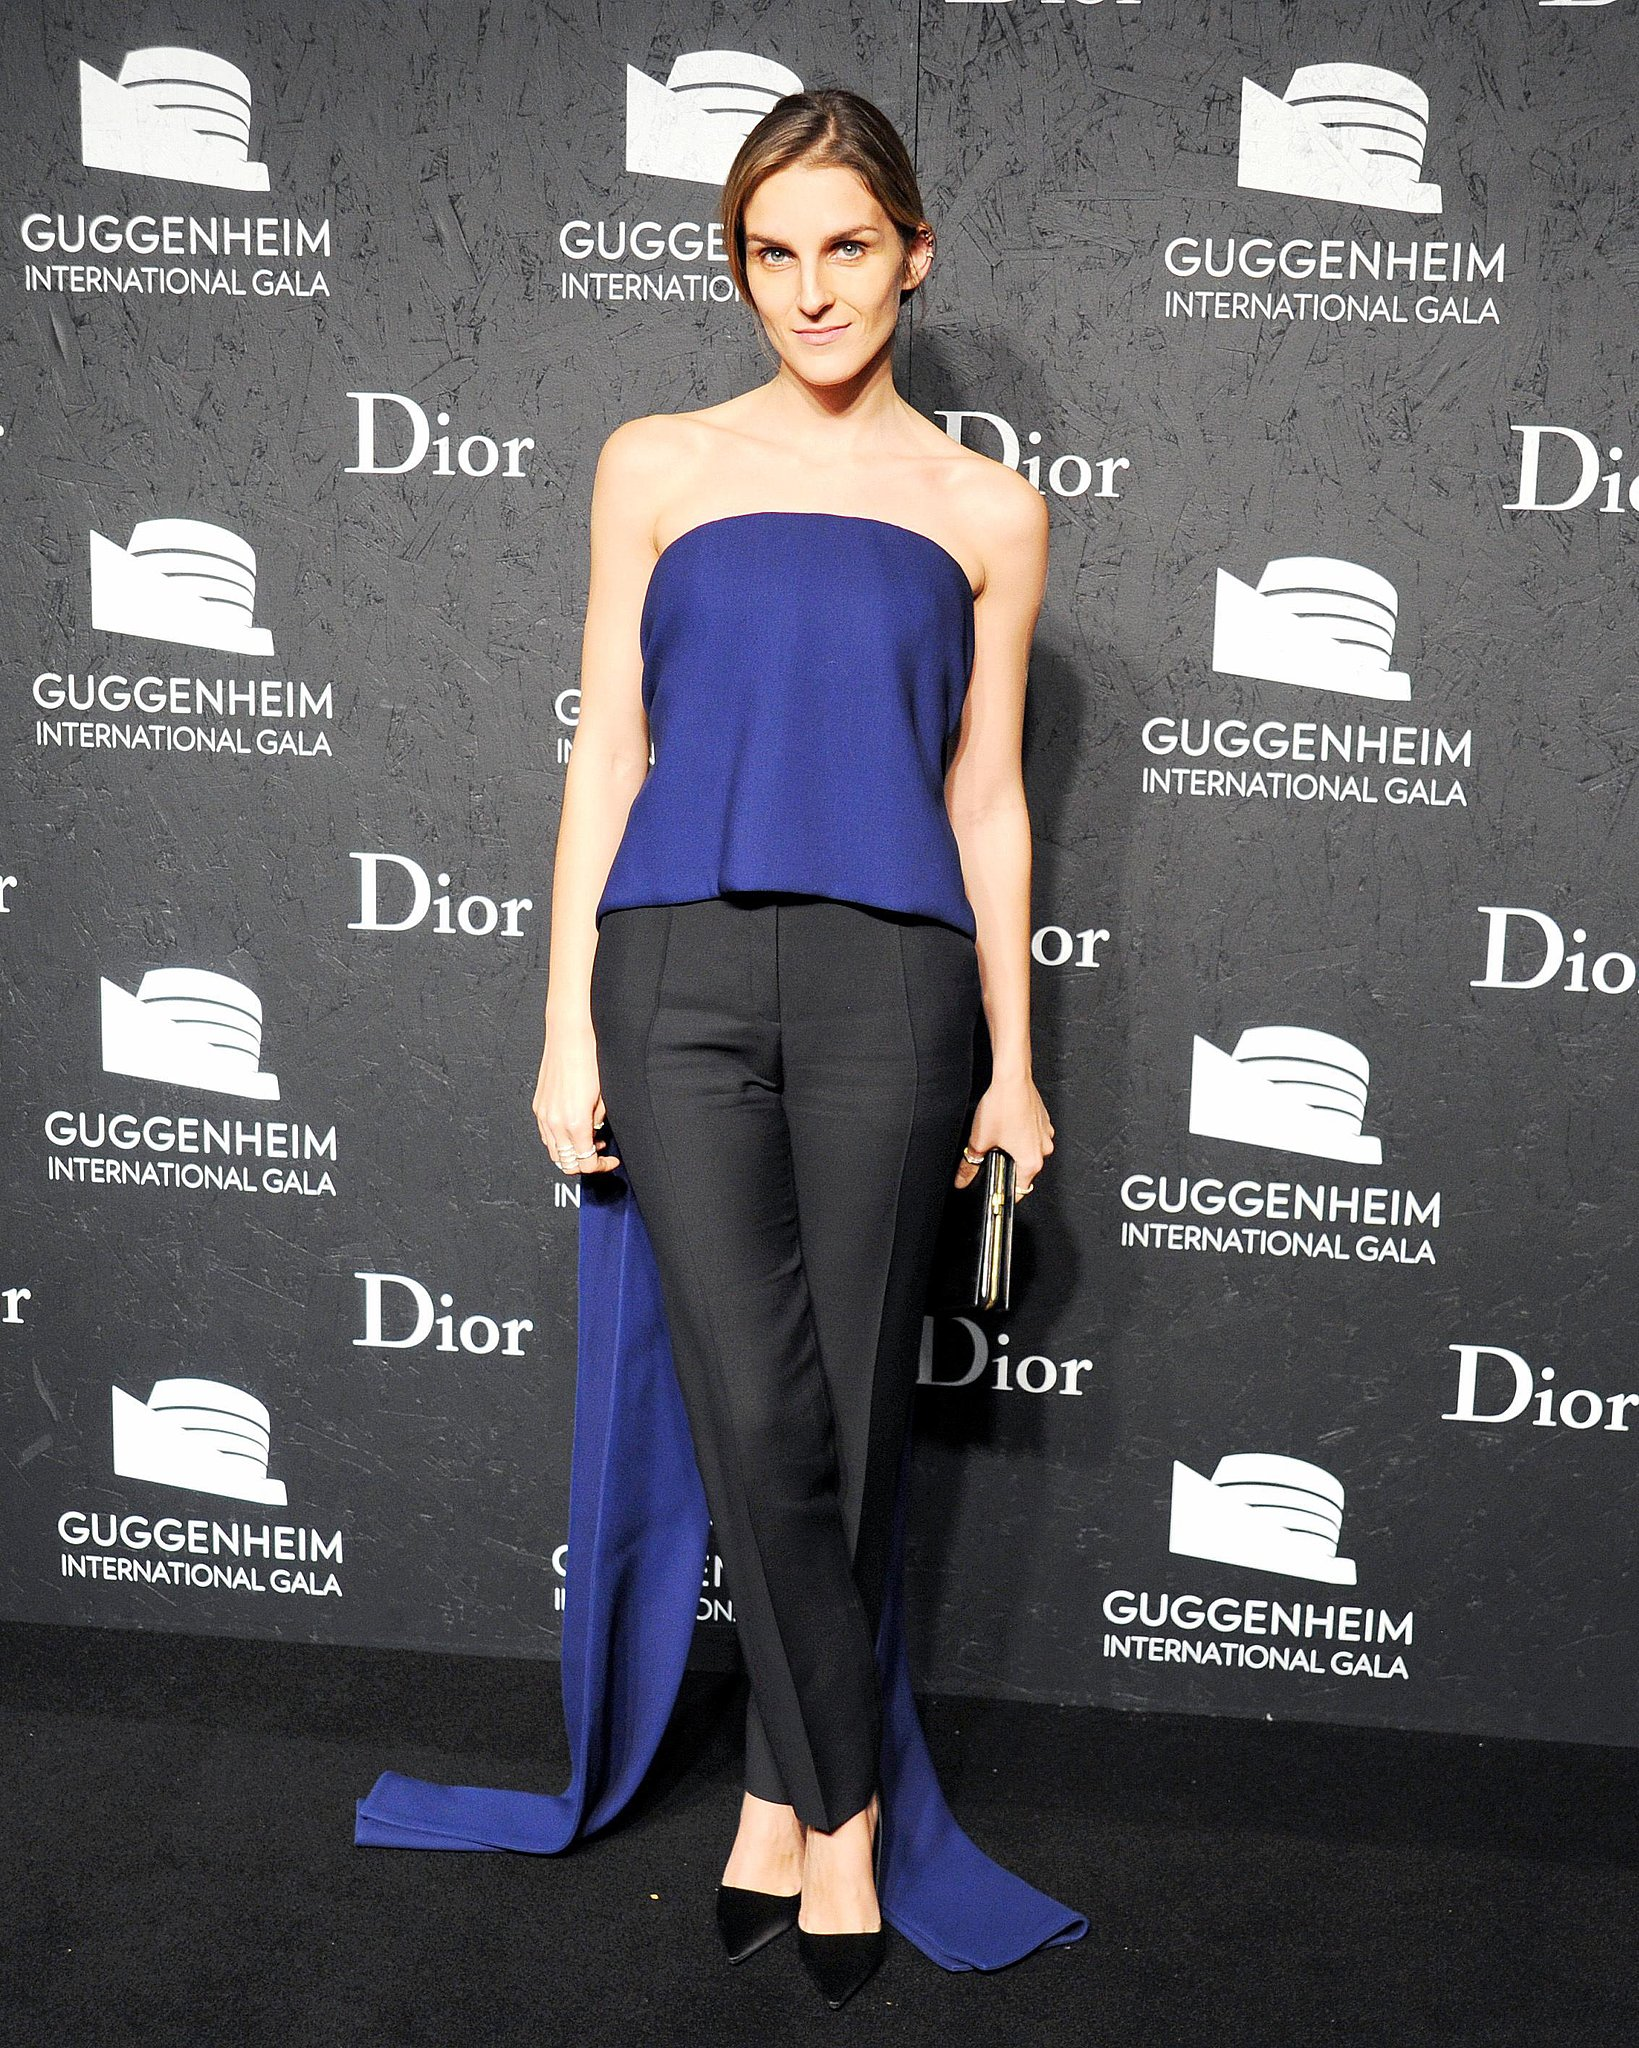 Gaia Repossi paired black and blue at the International Gala held at the Guggenheim Museum.